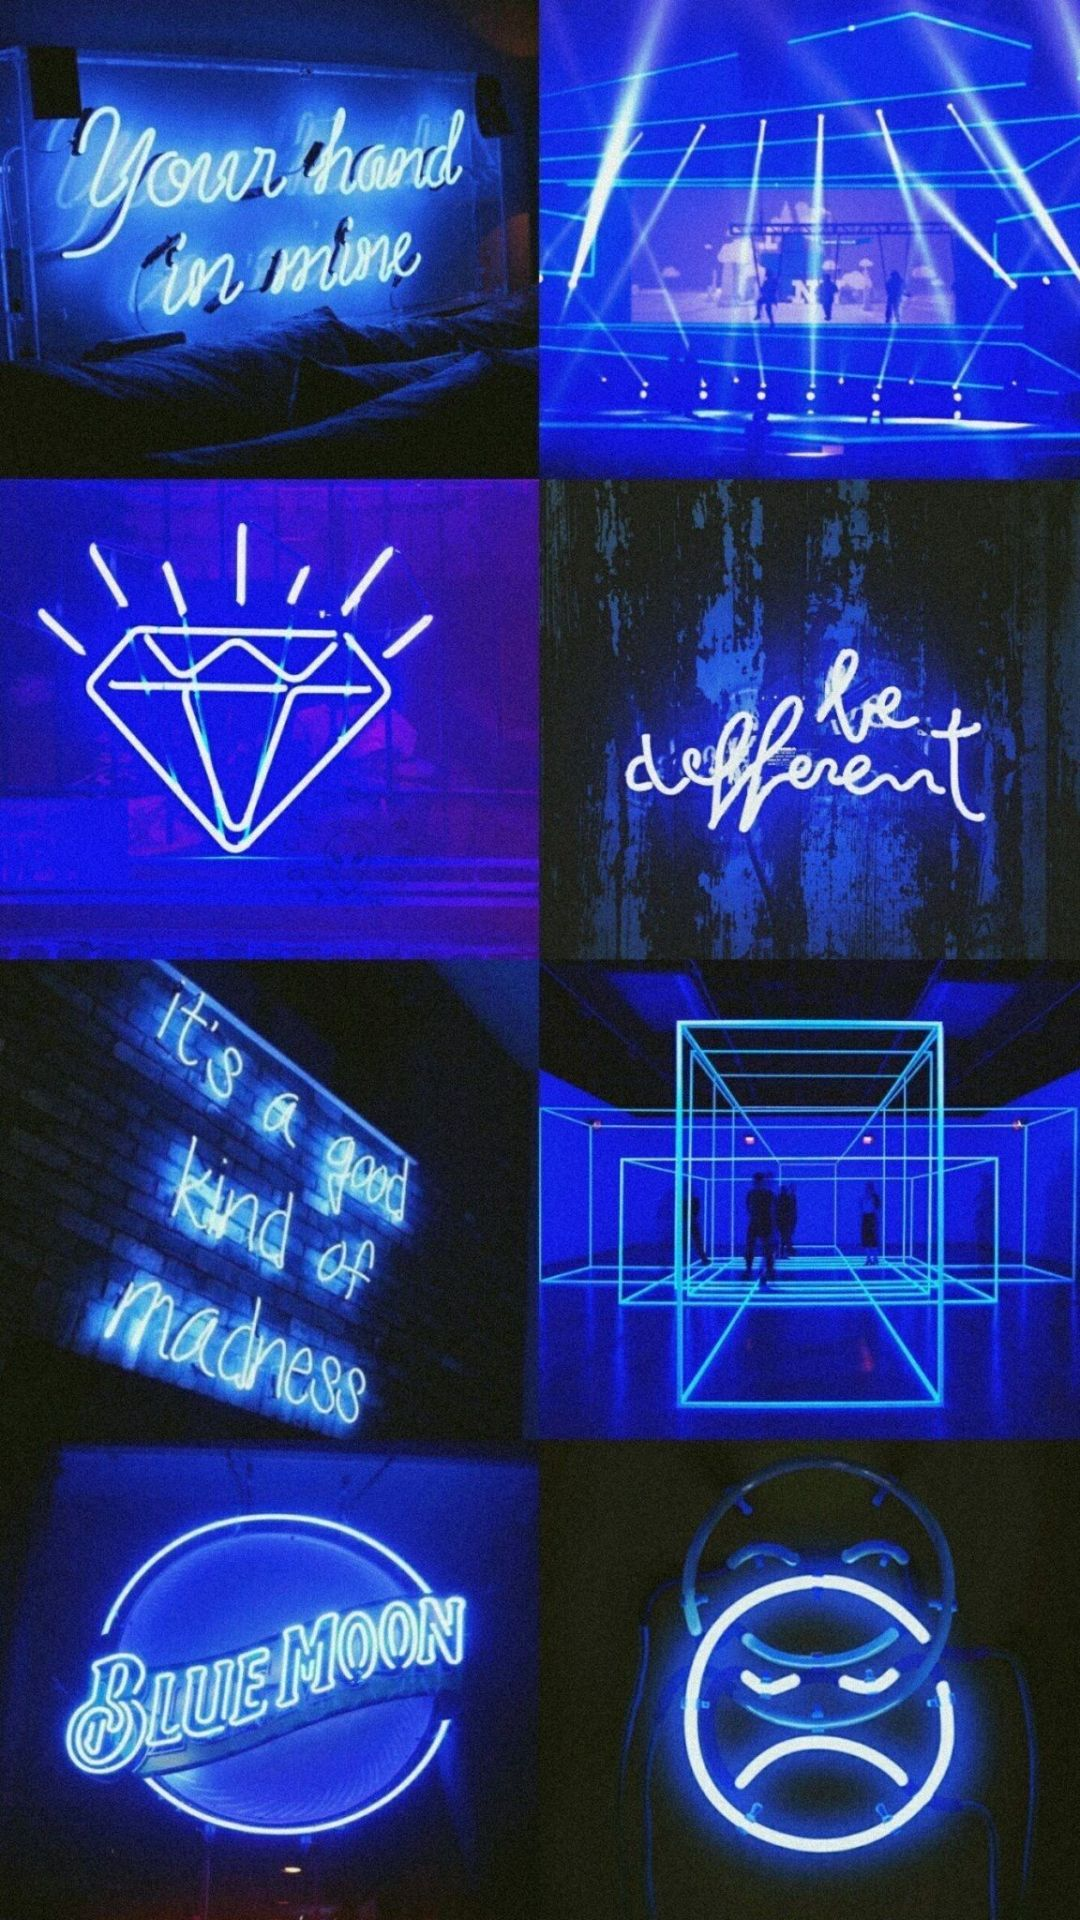 Aesthetic Dark Blue Wallpaper Android In 2020 Neon Wallpaper Dark Blue Wallpaper Blue Wallpaper Iphone